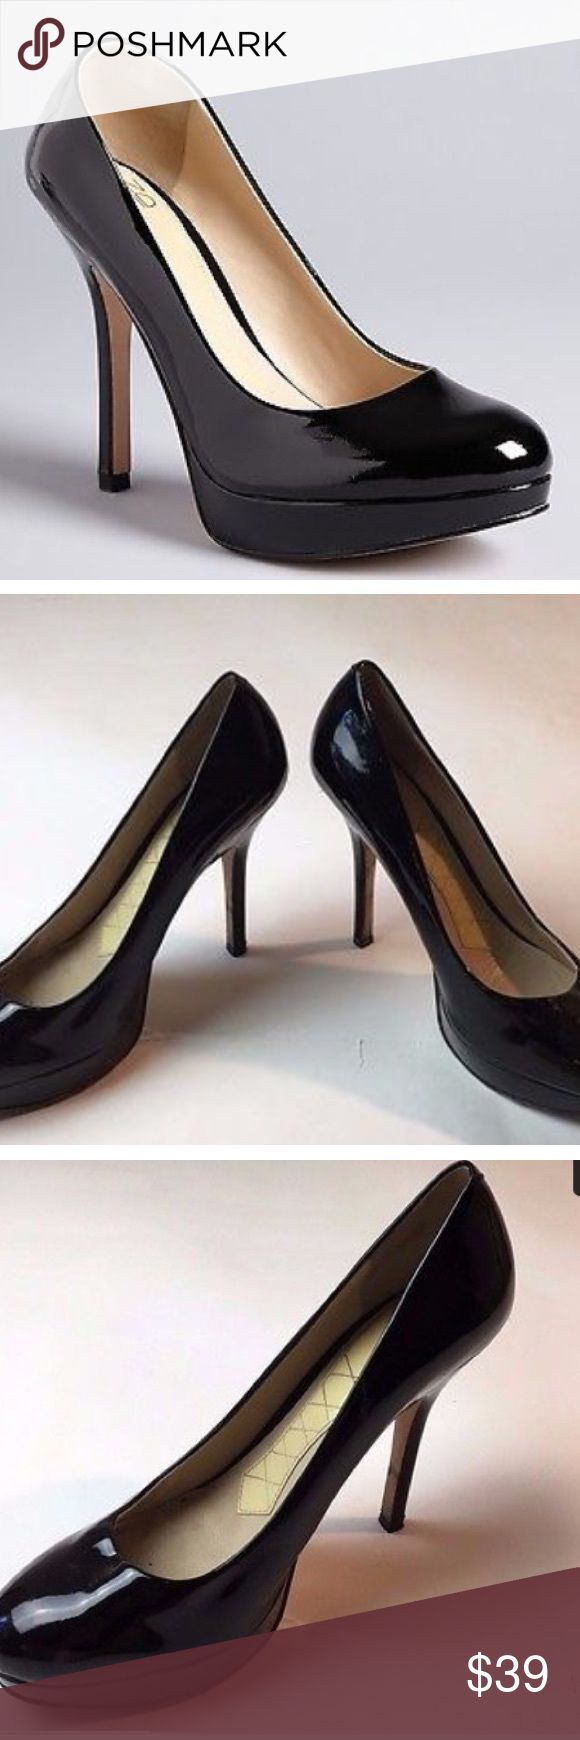 Joan & David Flipp Black Patent Leather Heels sz 8 Joan & David Flipp Black Patent Leather Classic High Stiletto Pumps Heels sz 8 heel height is 4.75 inches Joan & David Shoes Heels